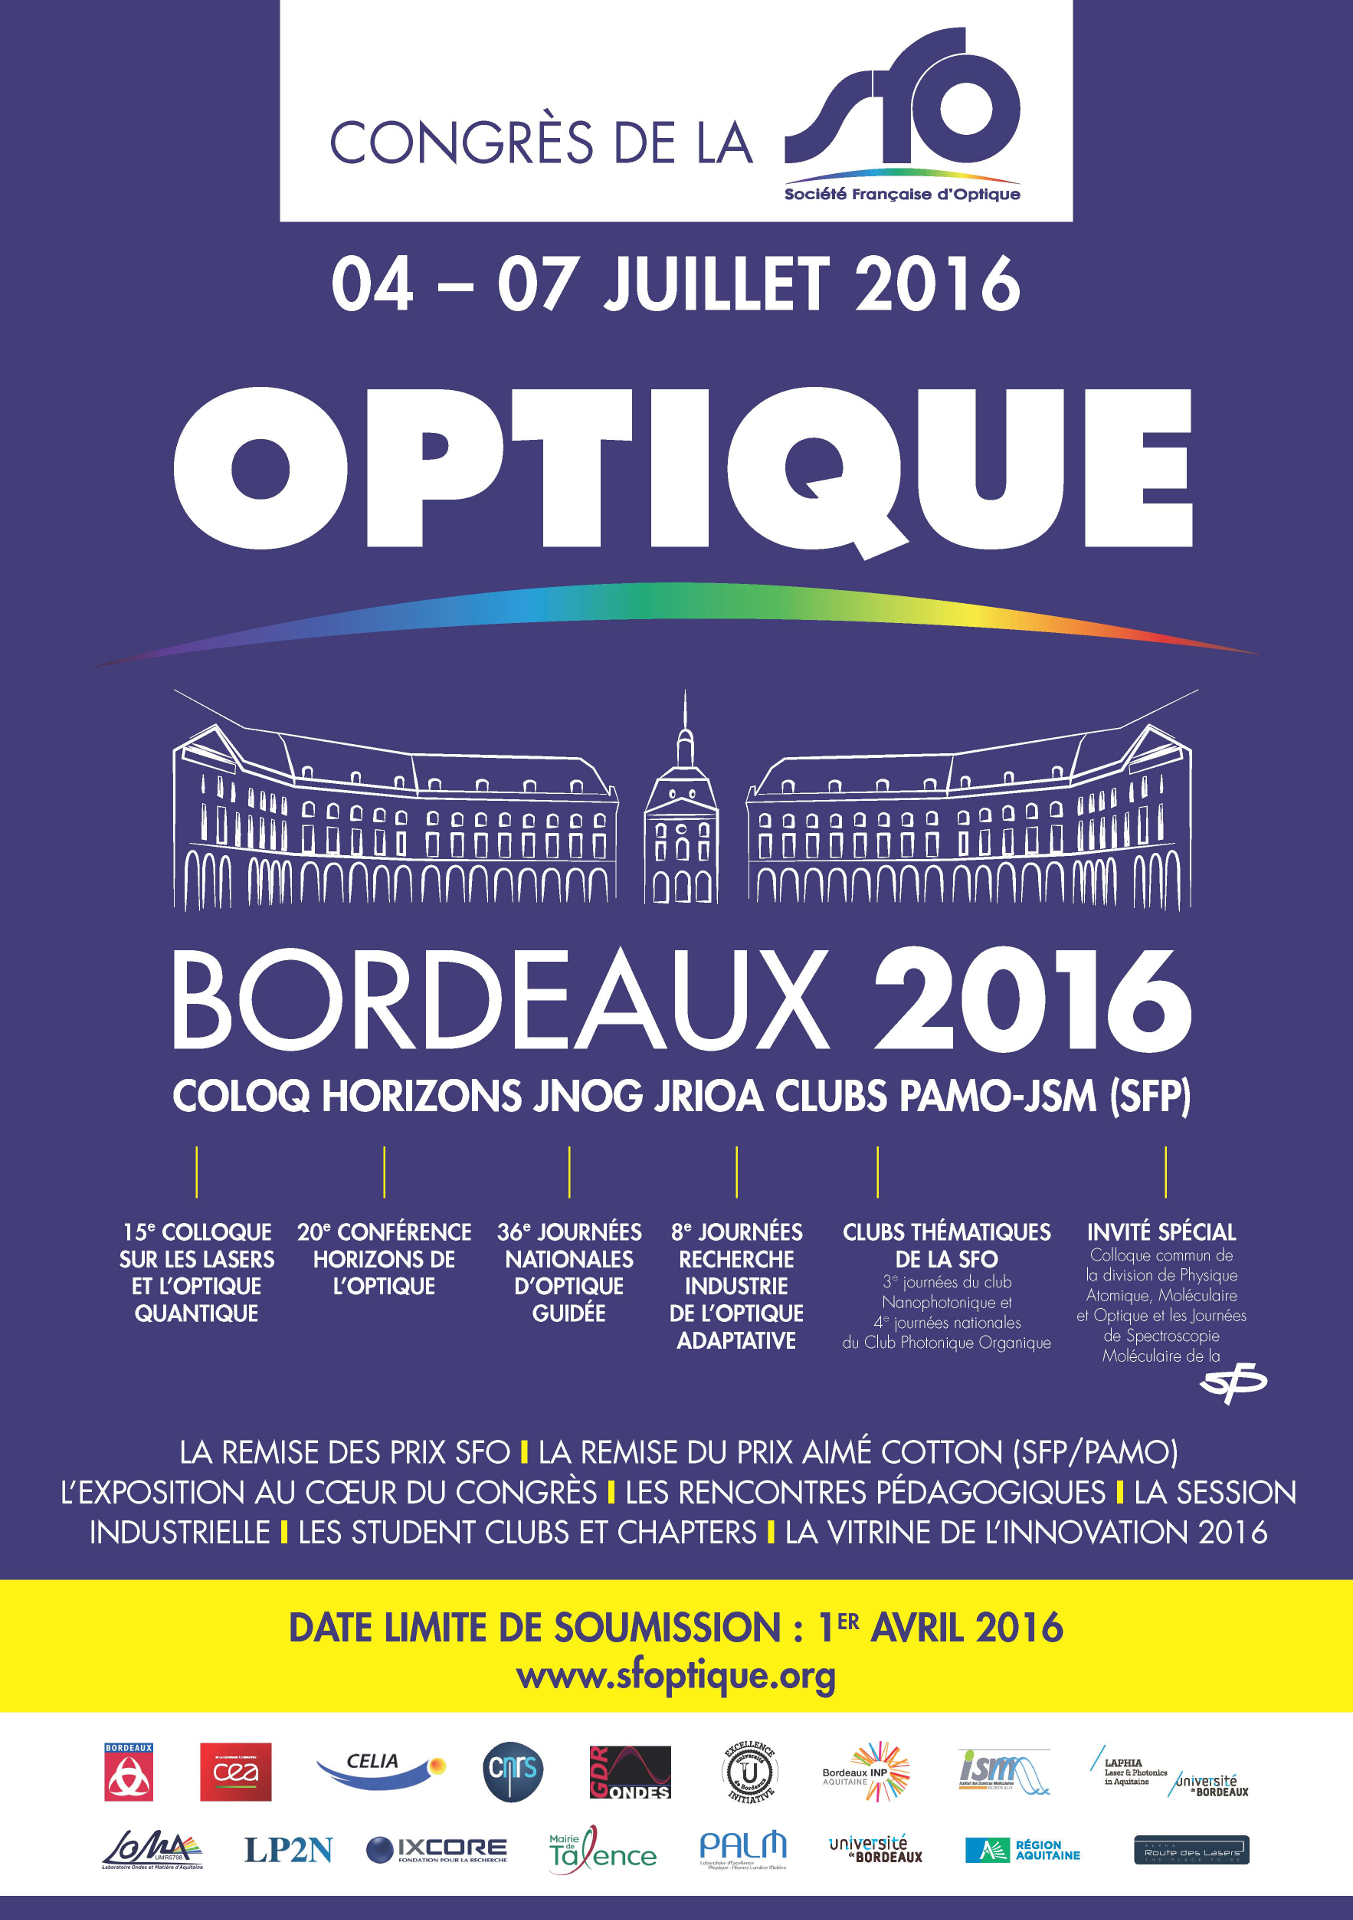 Congres OPTIQUE Bordeaux 2016